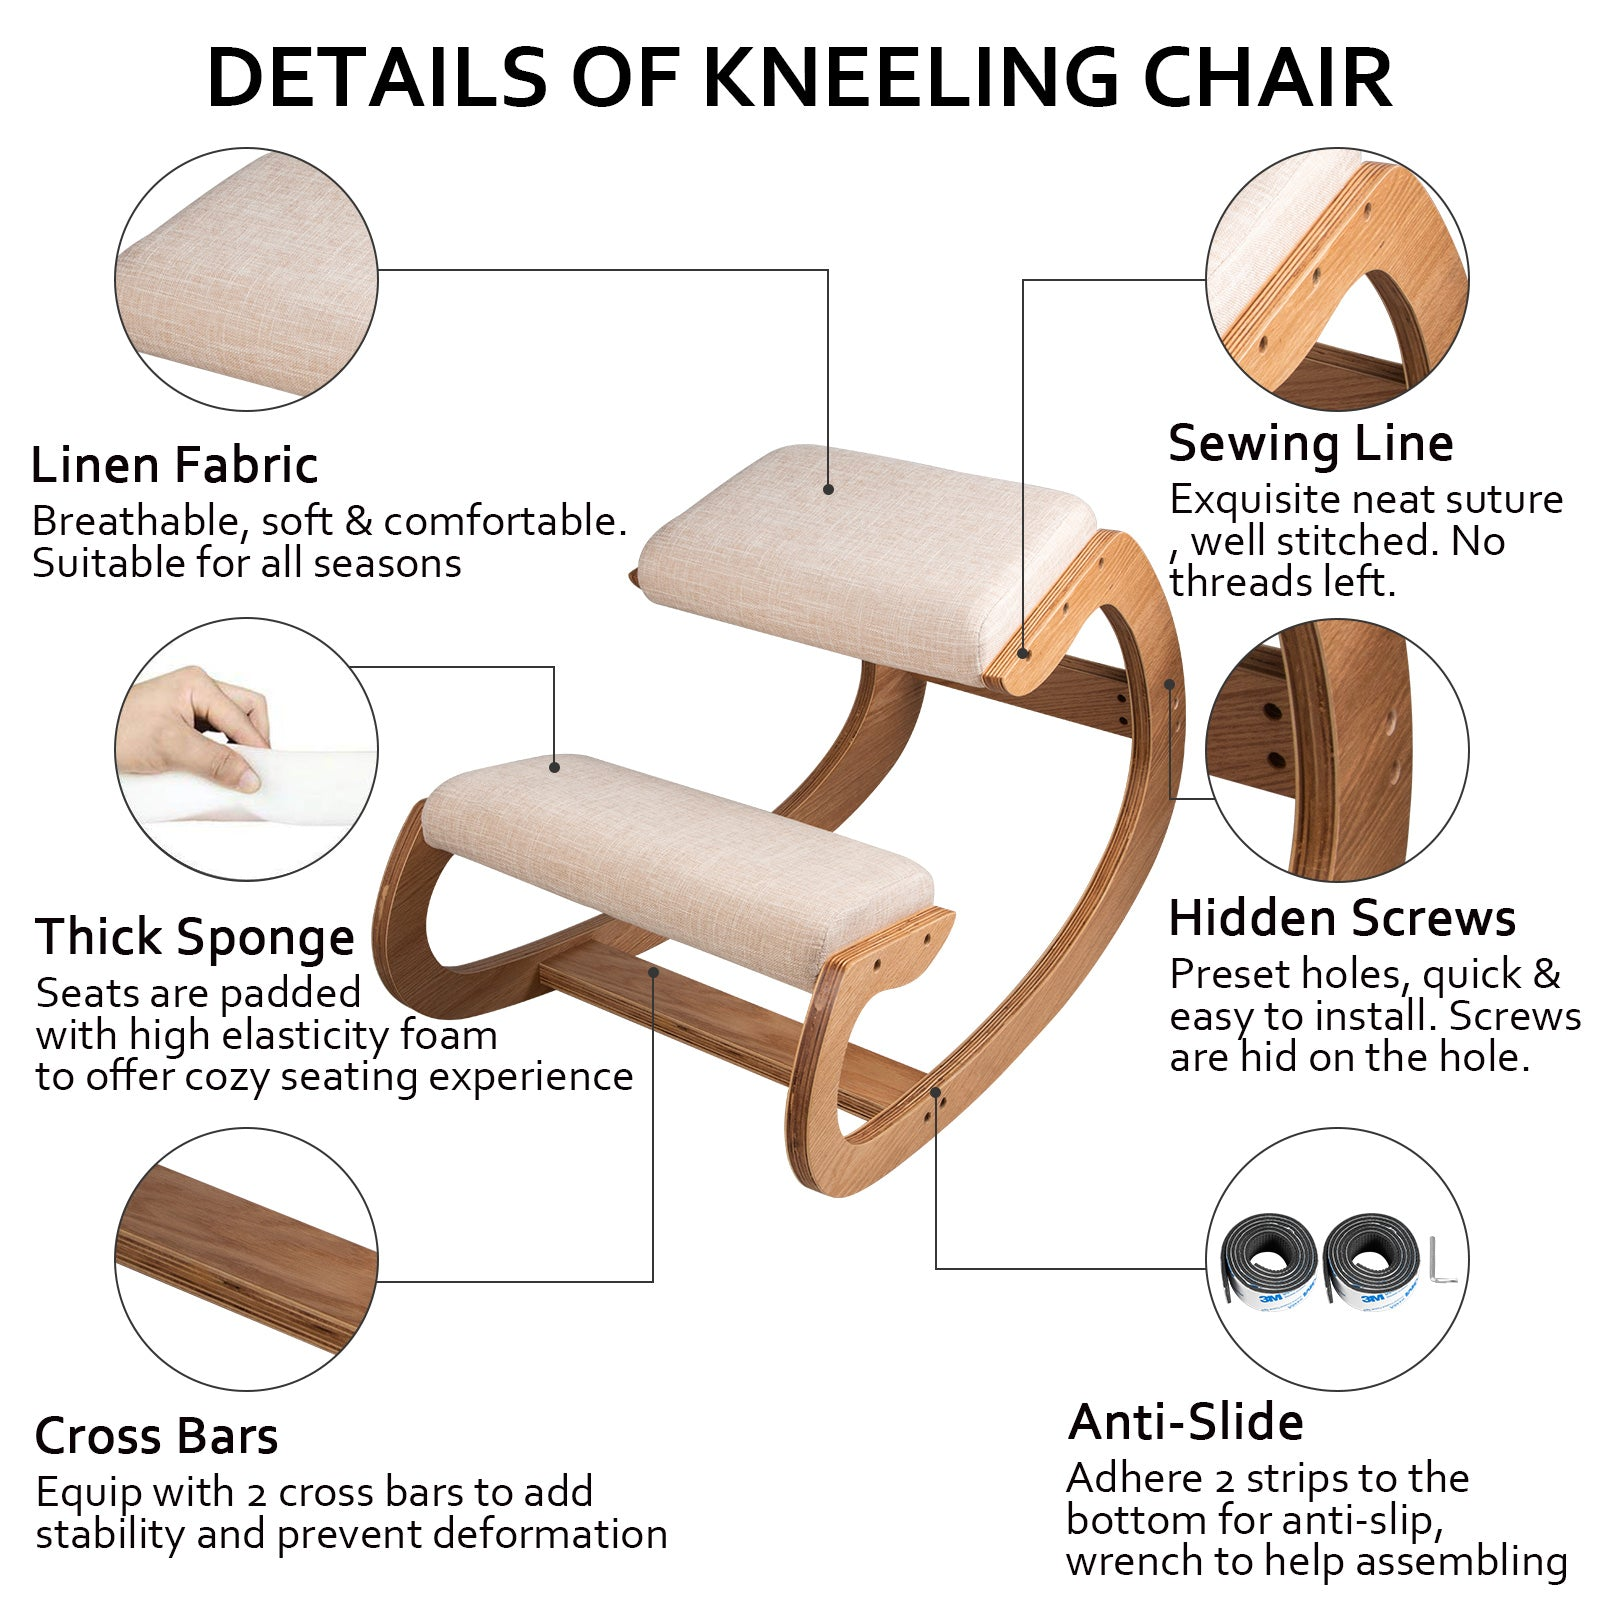 Ergonomic Kneeling Chair Wooden Sturdy Neck Pain Relief Posture Correcting